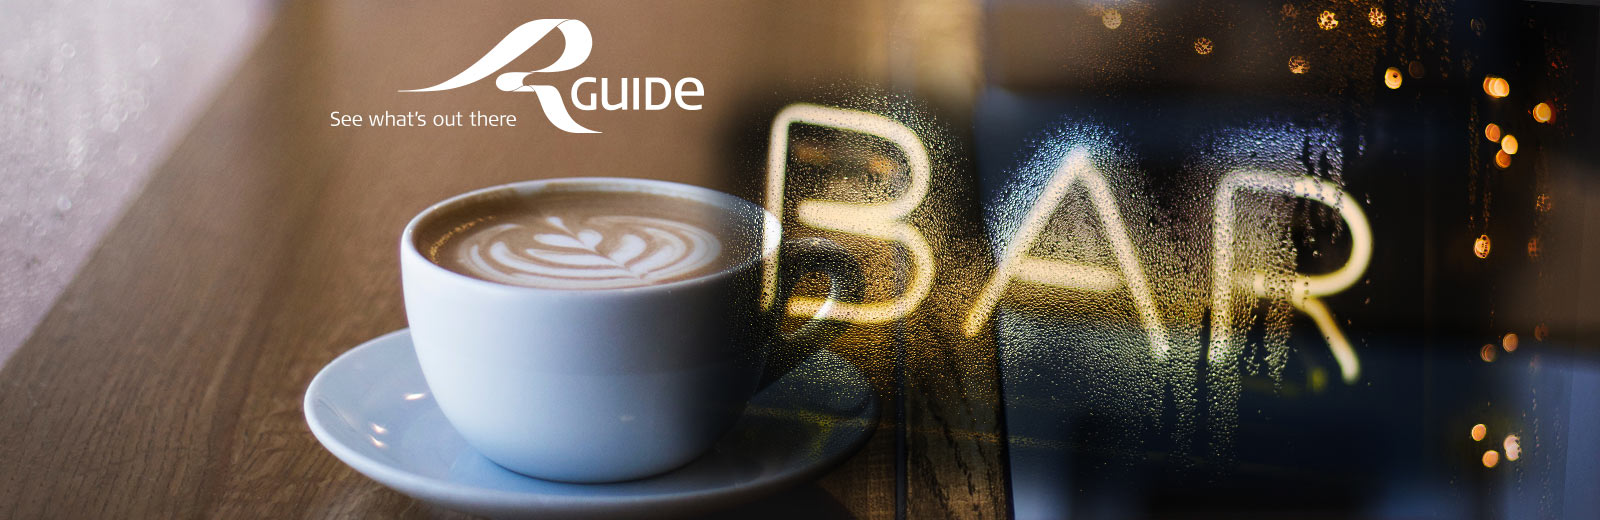 close up of a coffee cup with a superimposed image of a illuminated bar sign